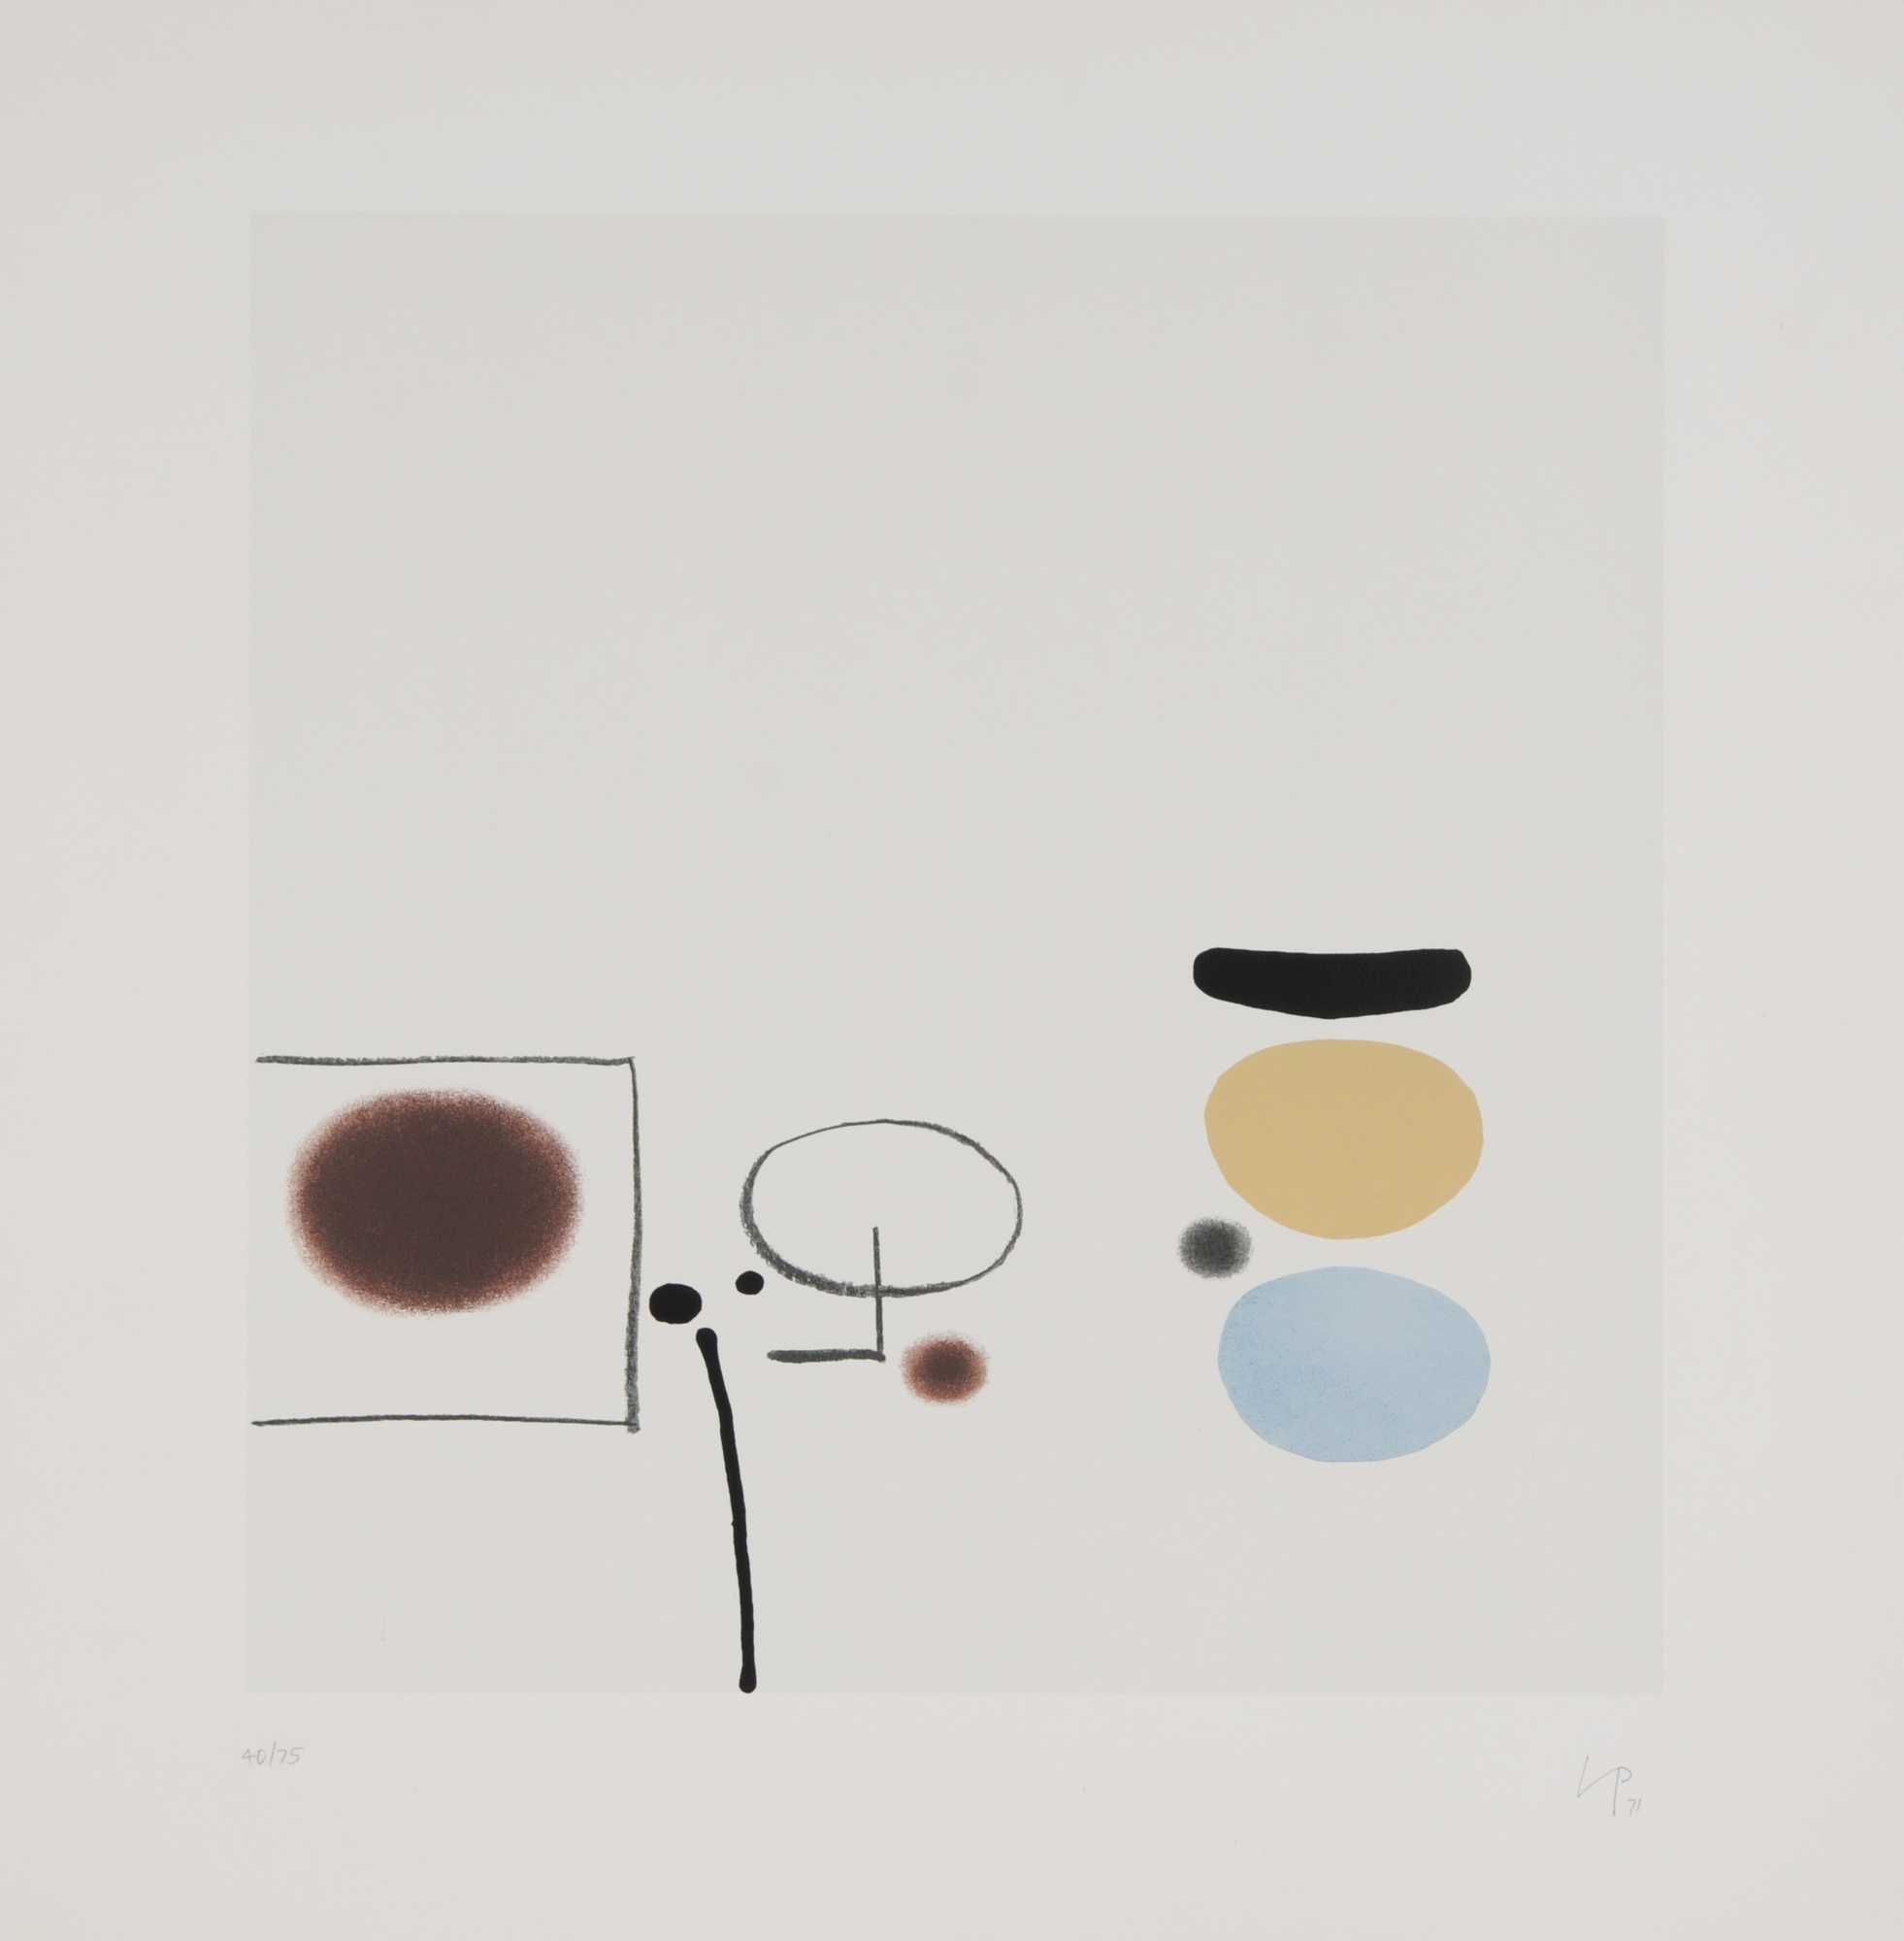 Pasmore Victor, Abstract